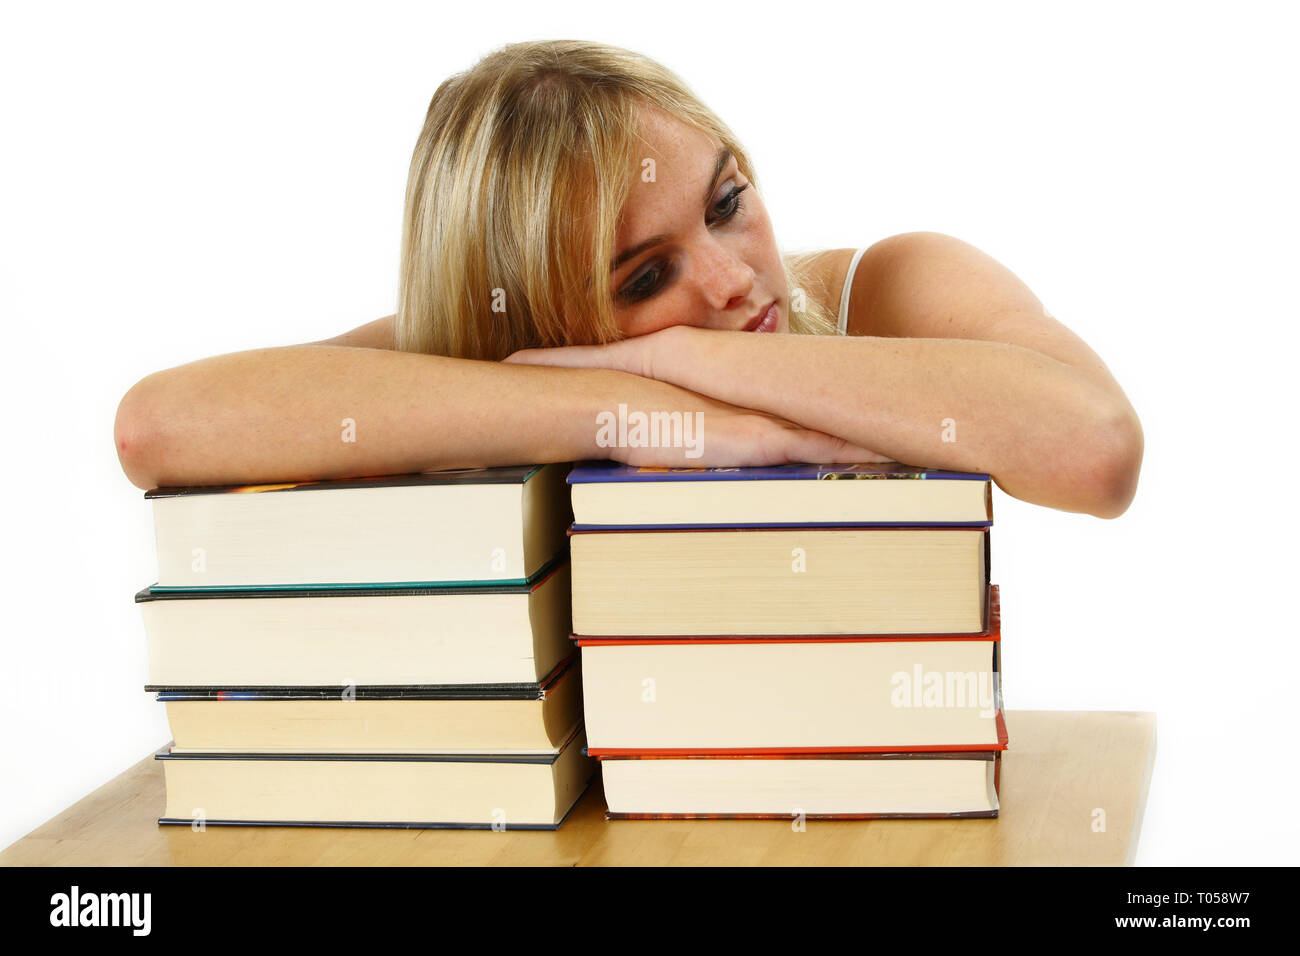 A young woman is leaning exhausted on a pile of books. Isolated against a white background. - Stock Image